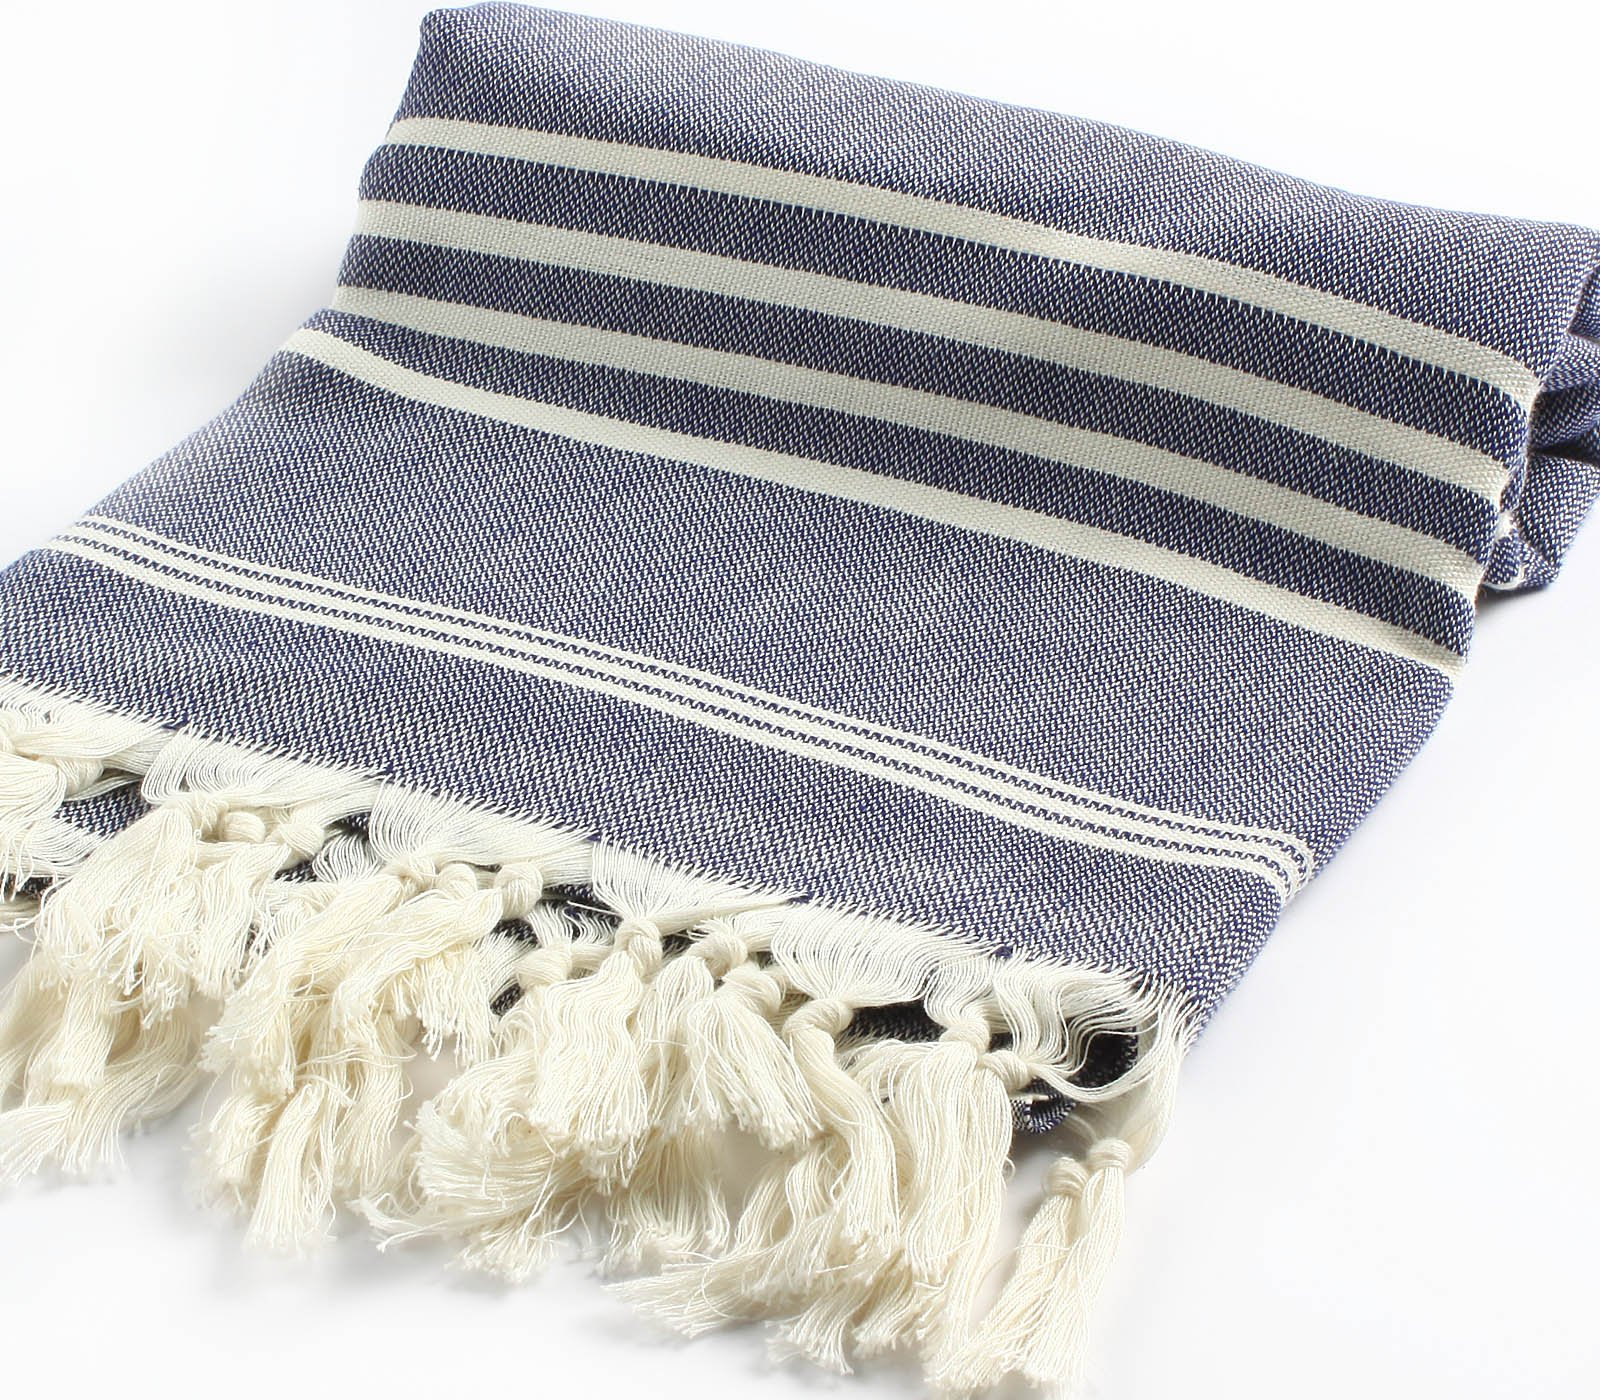 Cacala Hand Loomed Turkish Towel Pestemal Soft Cotton Darkblue - 100Percent cotton High absorption of water and quick drying-unisex-multipurpose; take less energy, water Cacala pestemal, super soft, takes up much less room in the linen closet, great for travel - bathroom-linens, bathroom, bath-towels - 91AjQssQqvL -